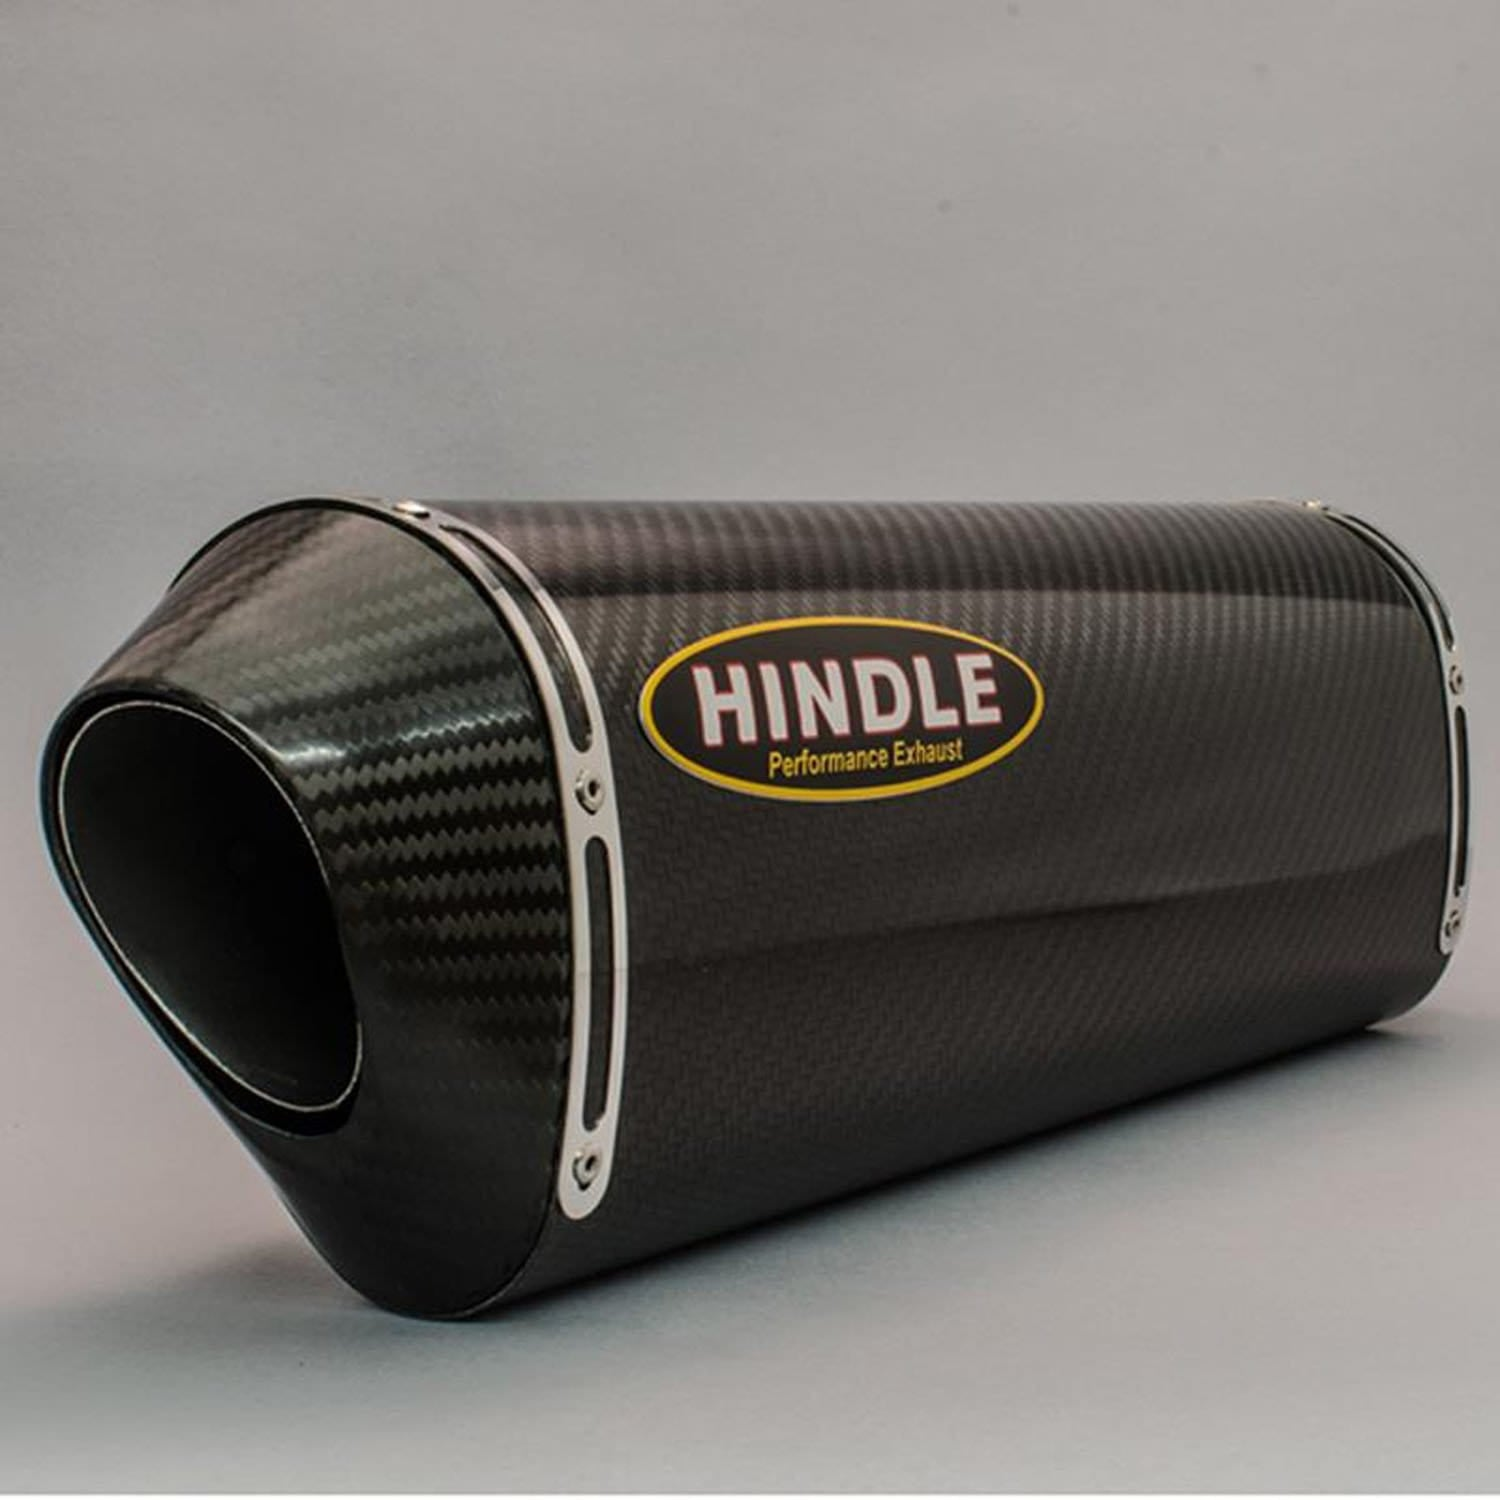 Hindle Evolution Slip-on System Suzuki Katana 600/750 1998-07